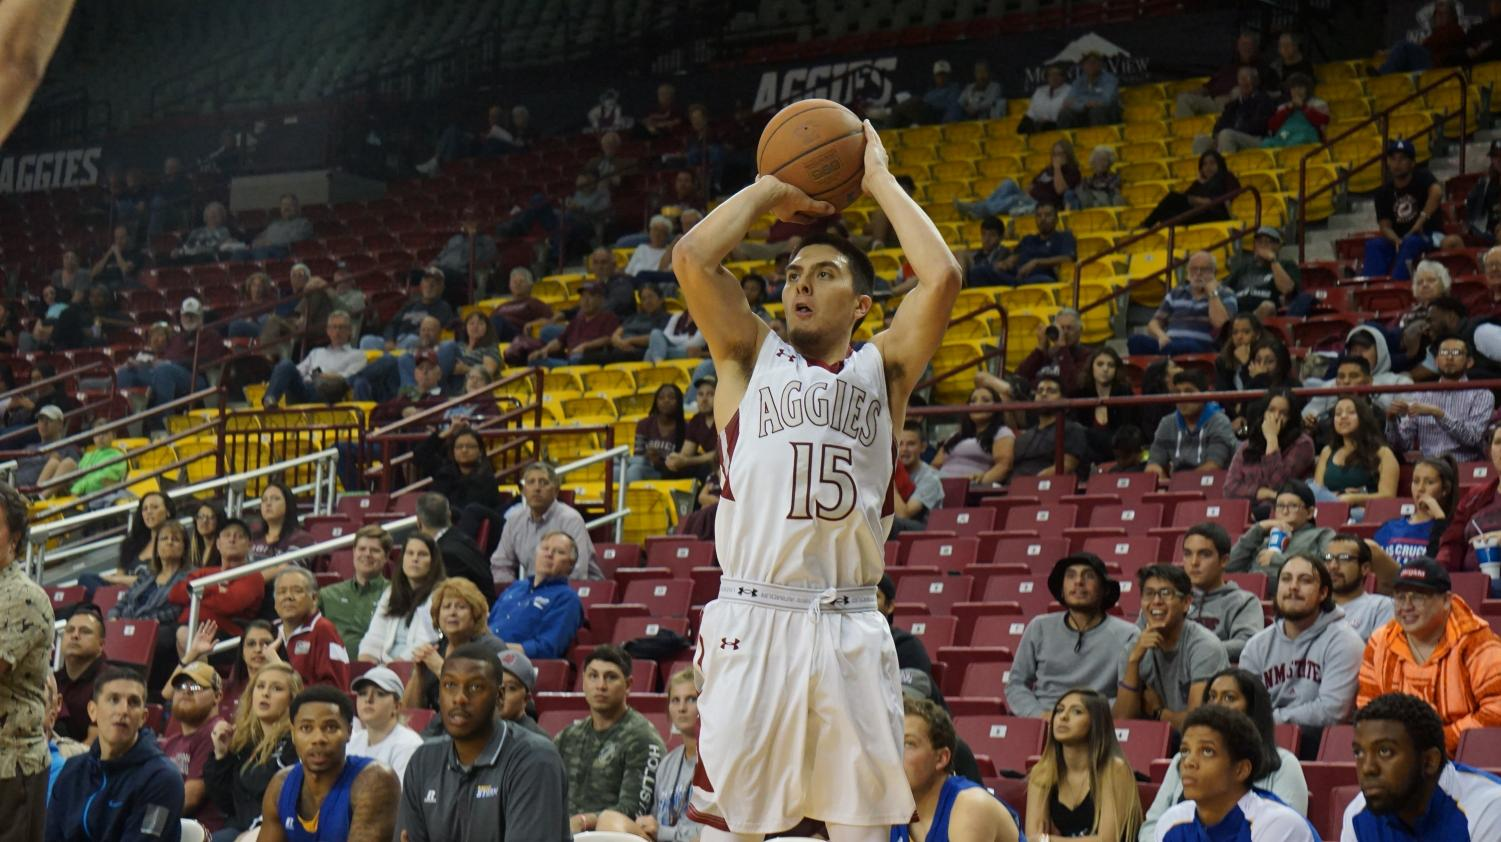 #15 Joe Garza shooting the ball from the 3-point line.